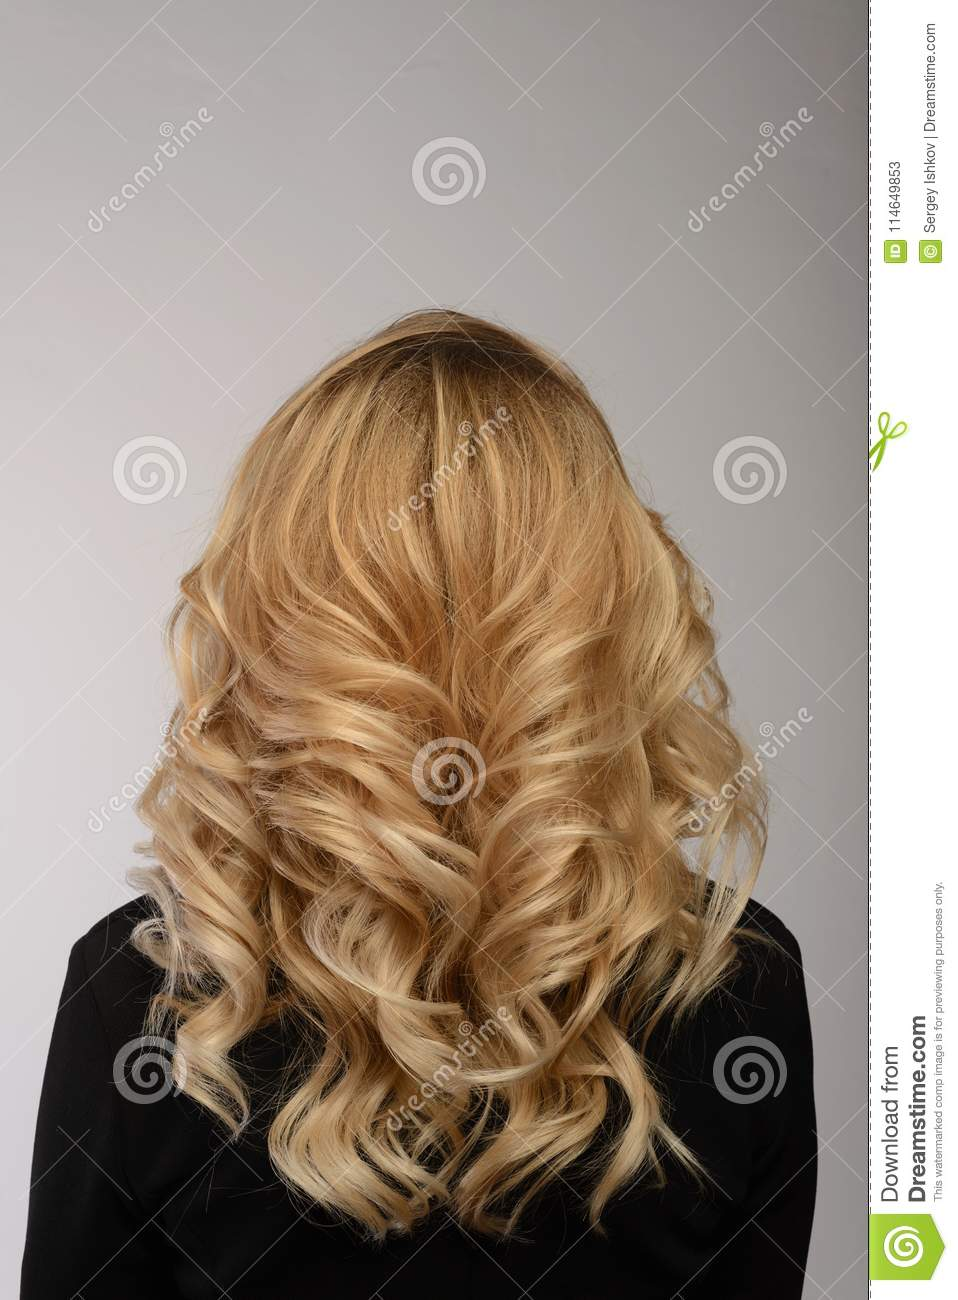 healthy hair. curly long hairstyle. back view of blond hairs